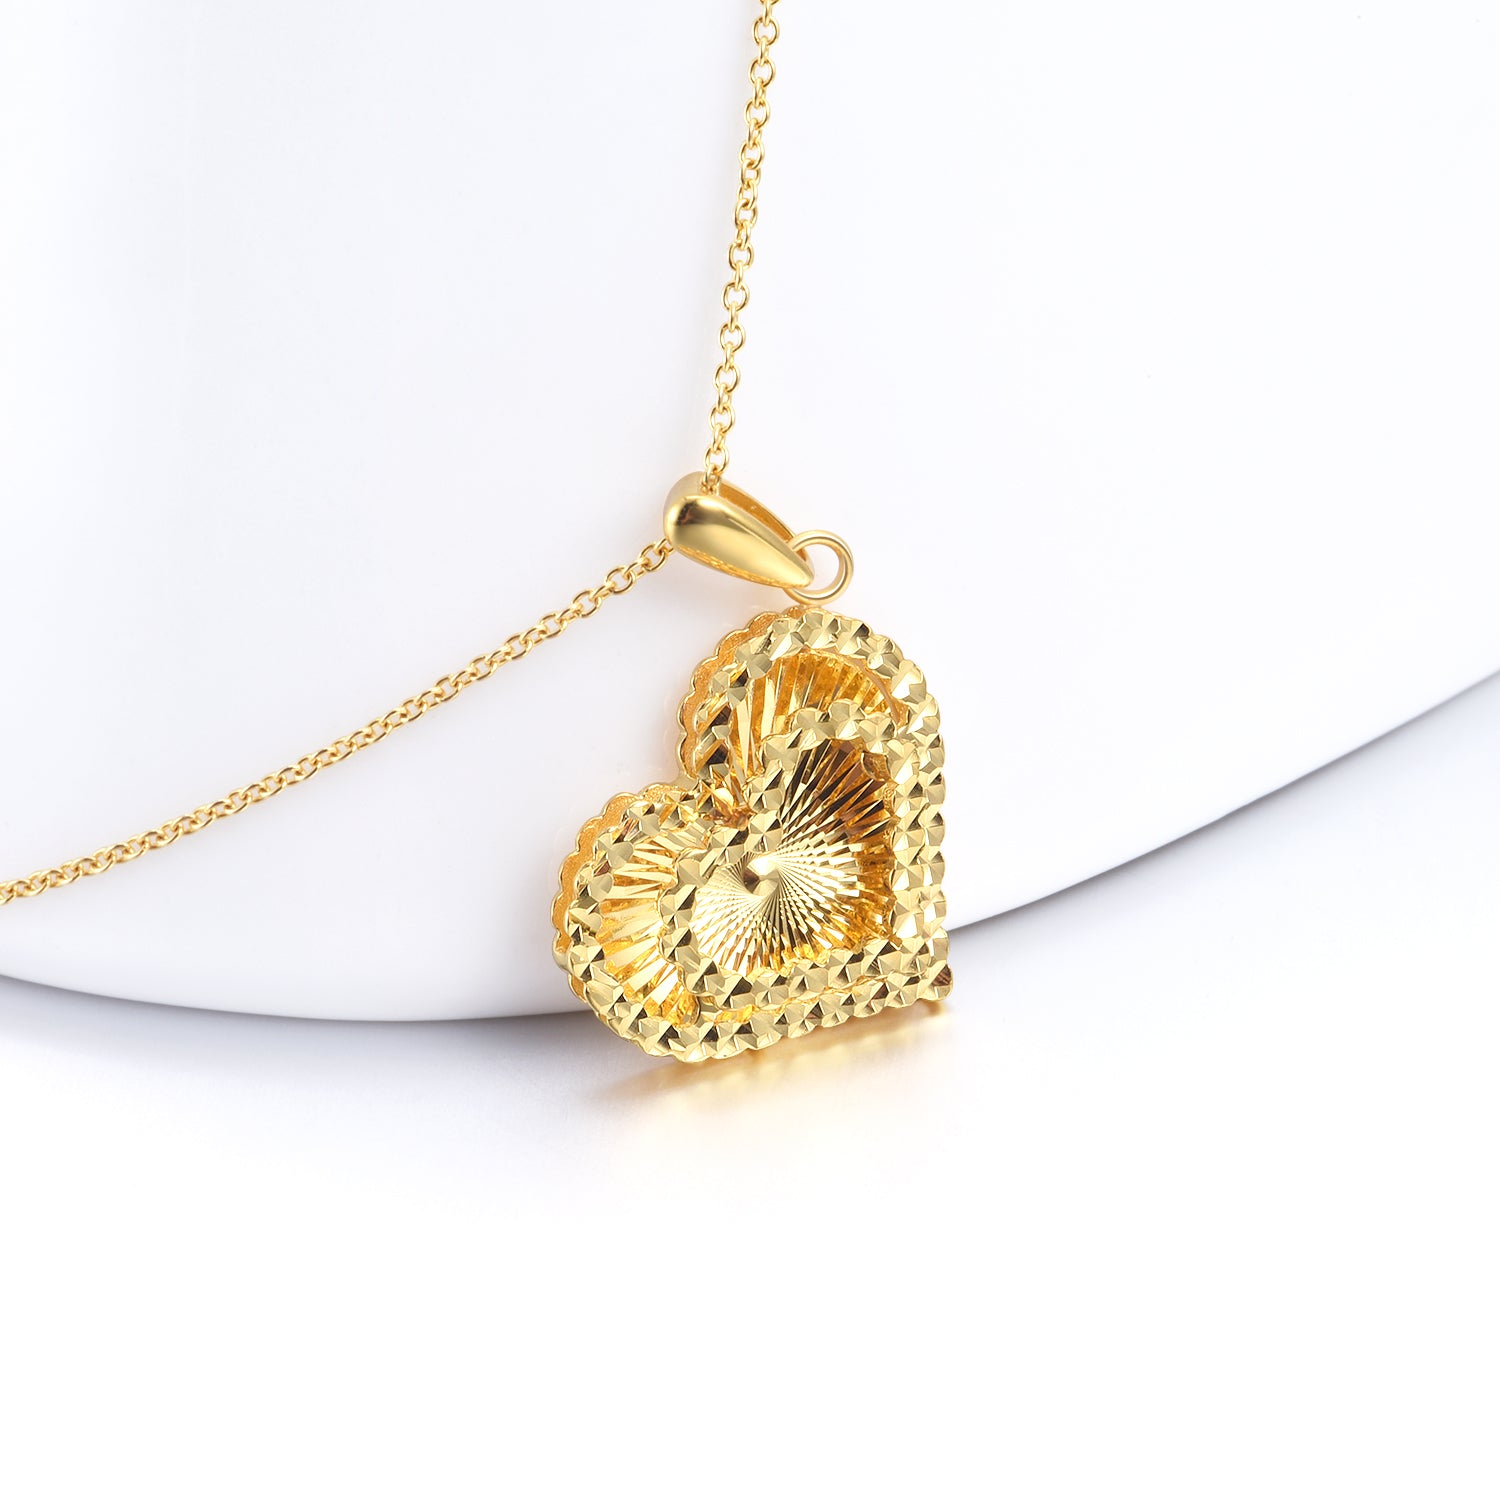 18K Gold Spiral Corrugated Heart-Shaped Clavicle Chain Fashion Wild Models